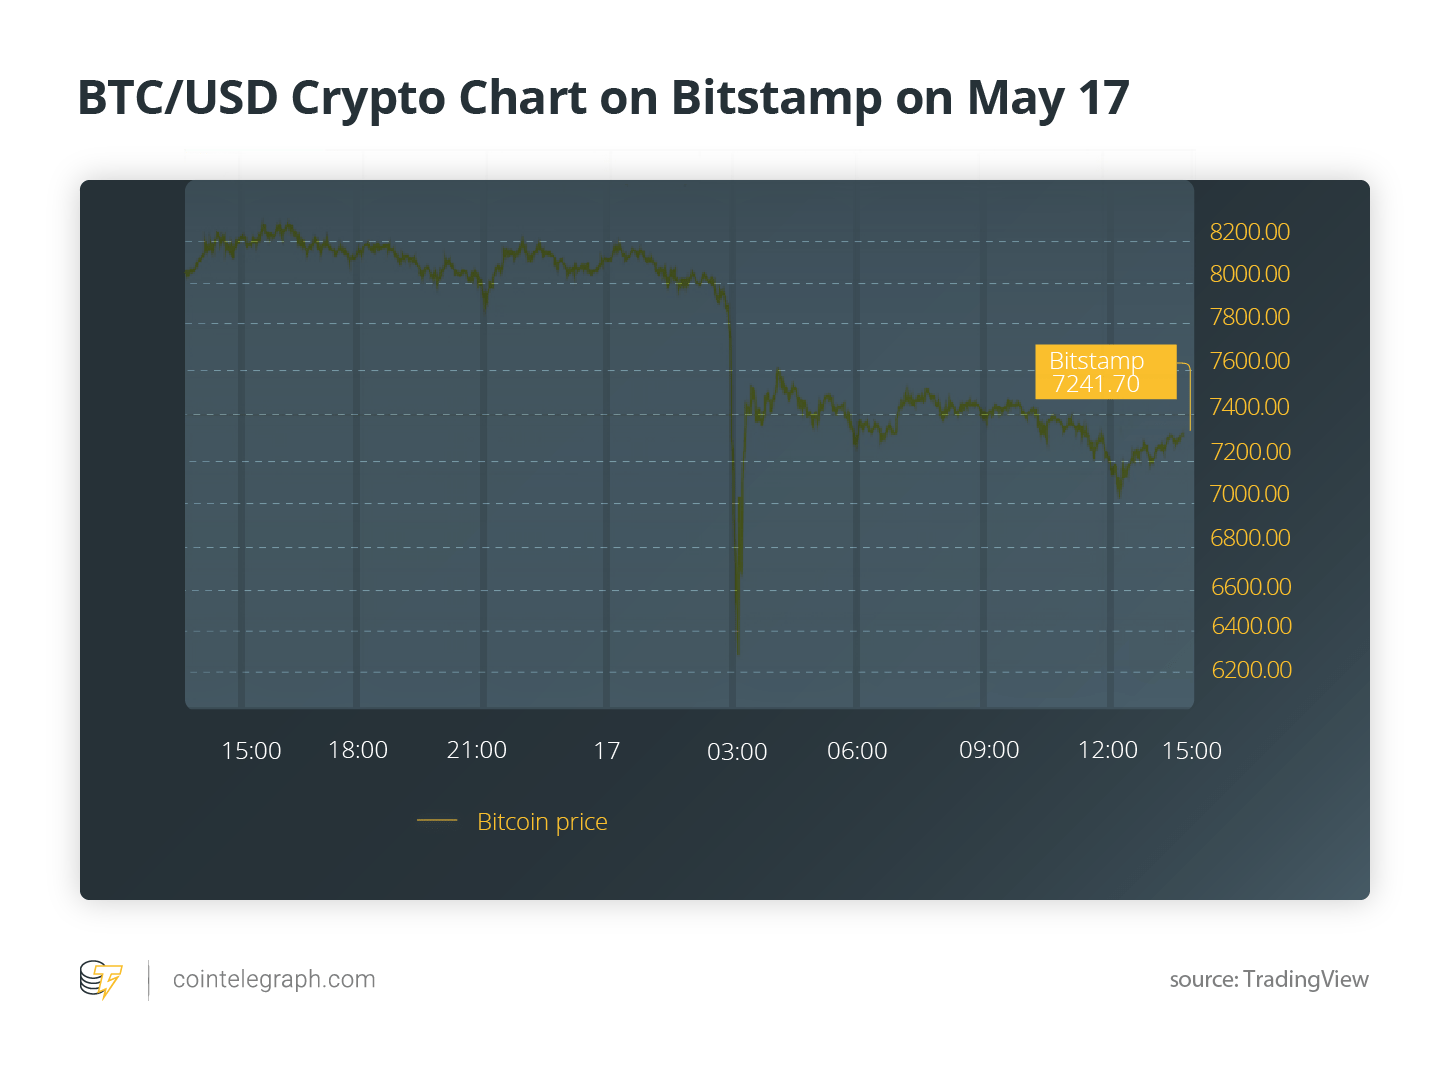 hight resolution of btc usd crypto chart on bitstamp on may 17